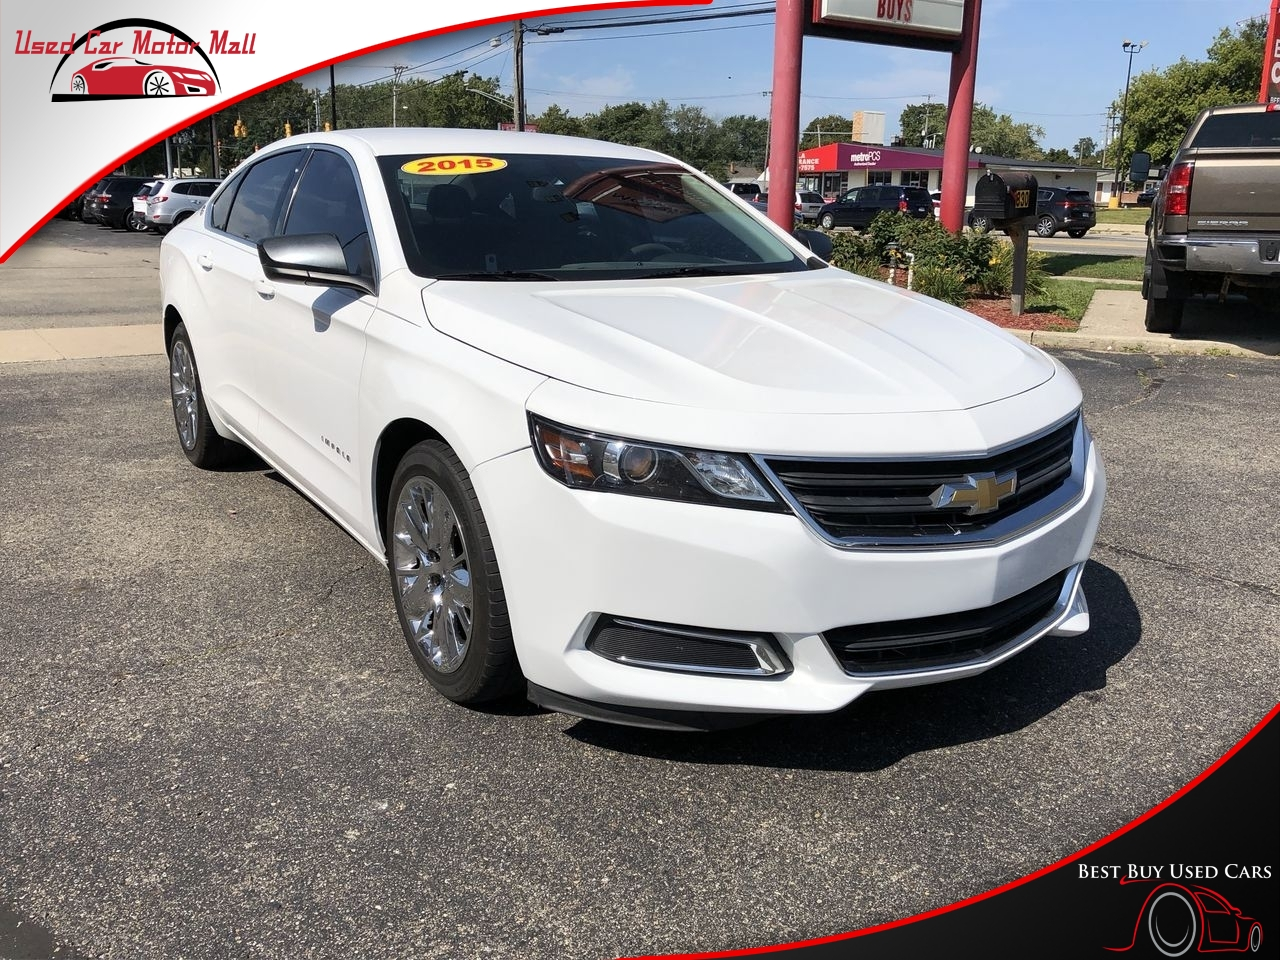 2018 Chevrolet Impala LT FWD, 174276, Photo 1